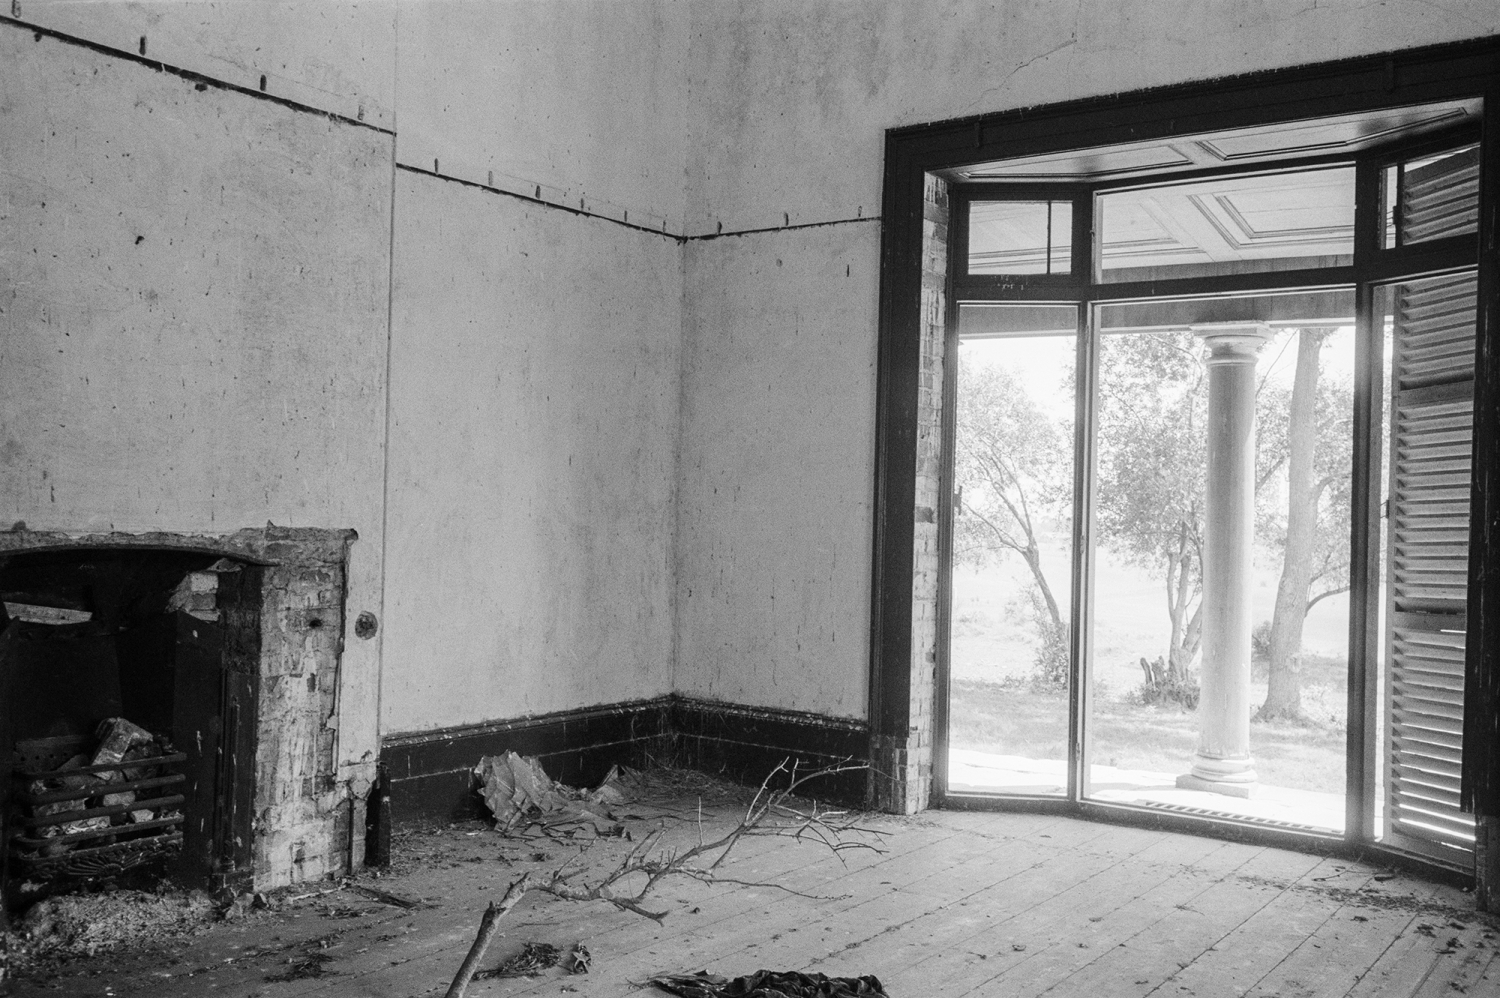 Interior of neglected room with branches on floor near fireplace and window.